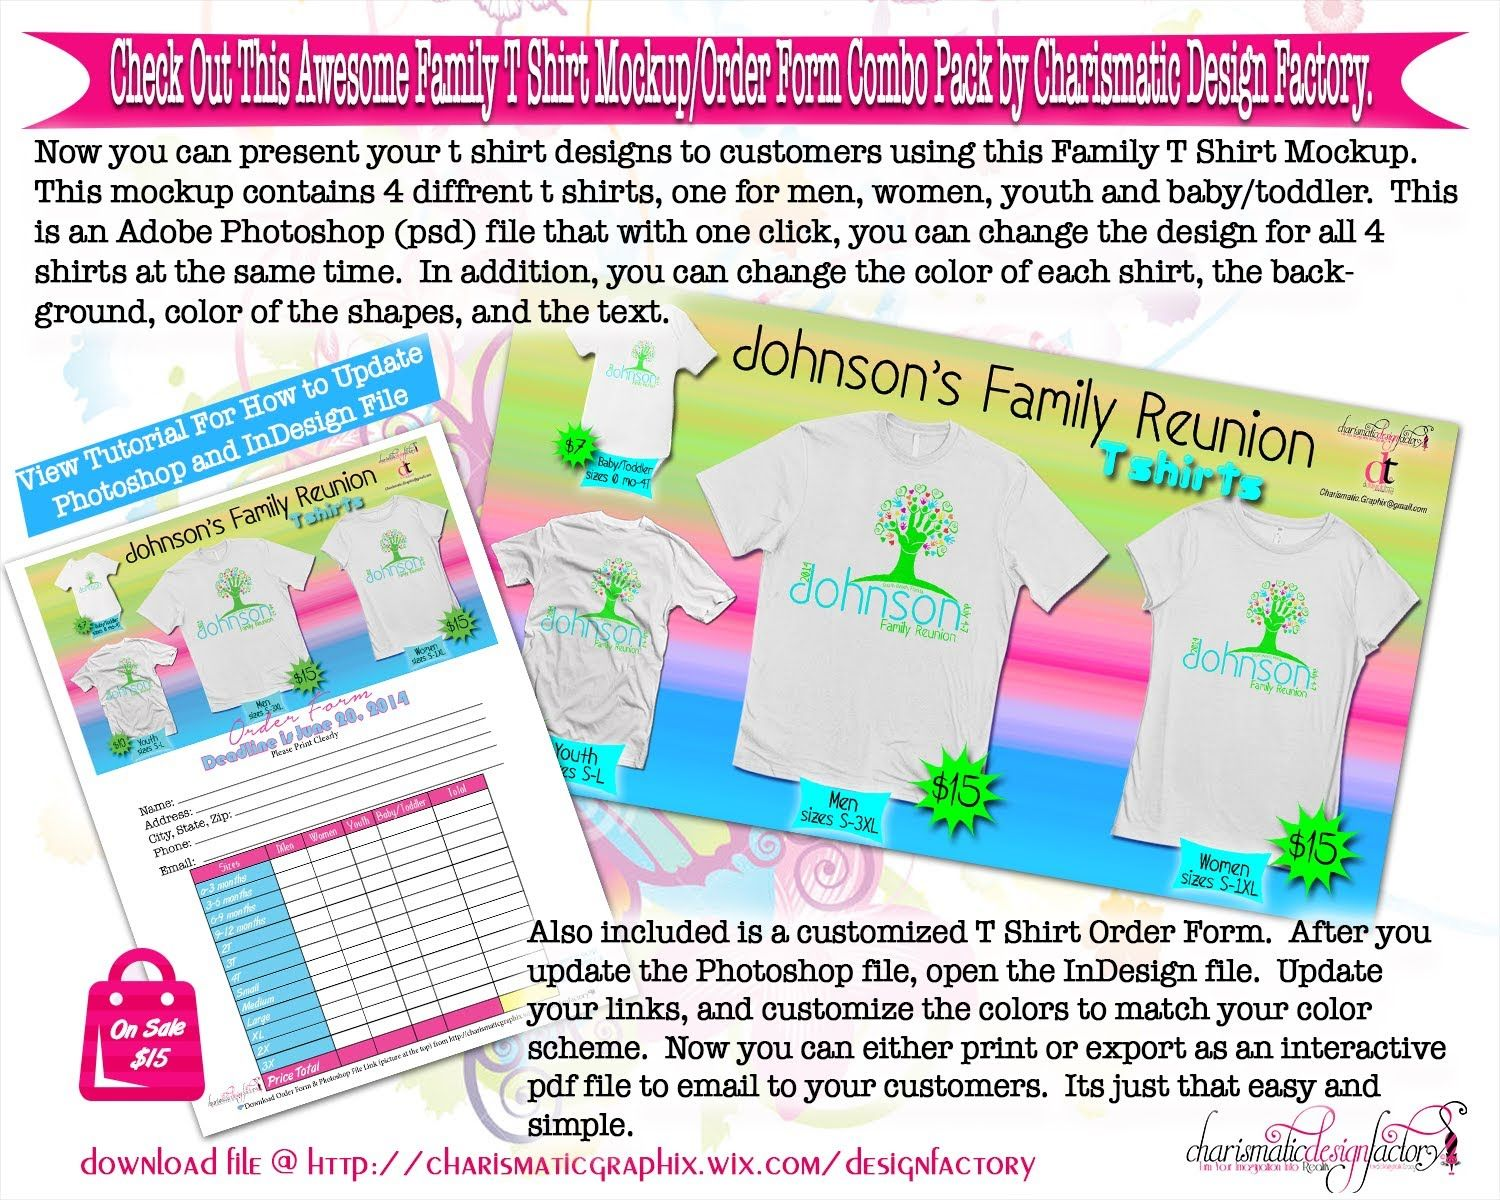 Family T Shirt Mockup & Order Sheet can be downloaded from http ...